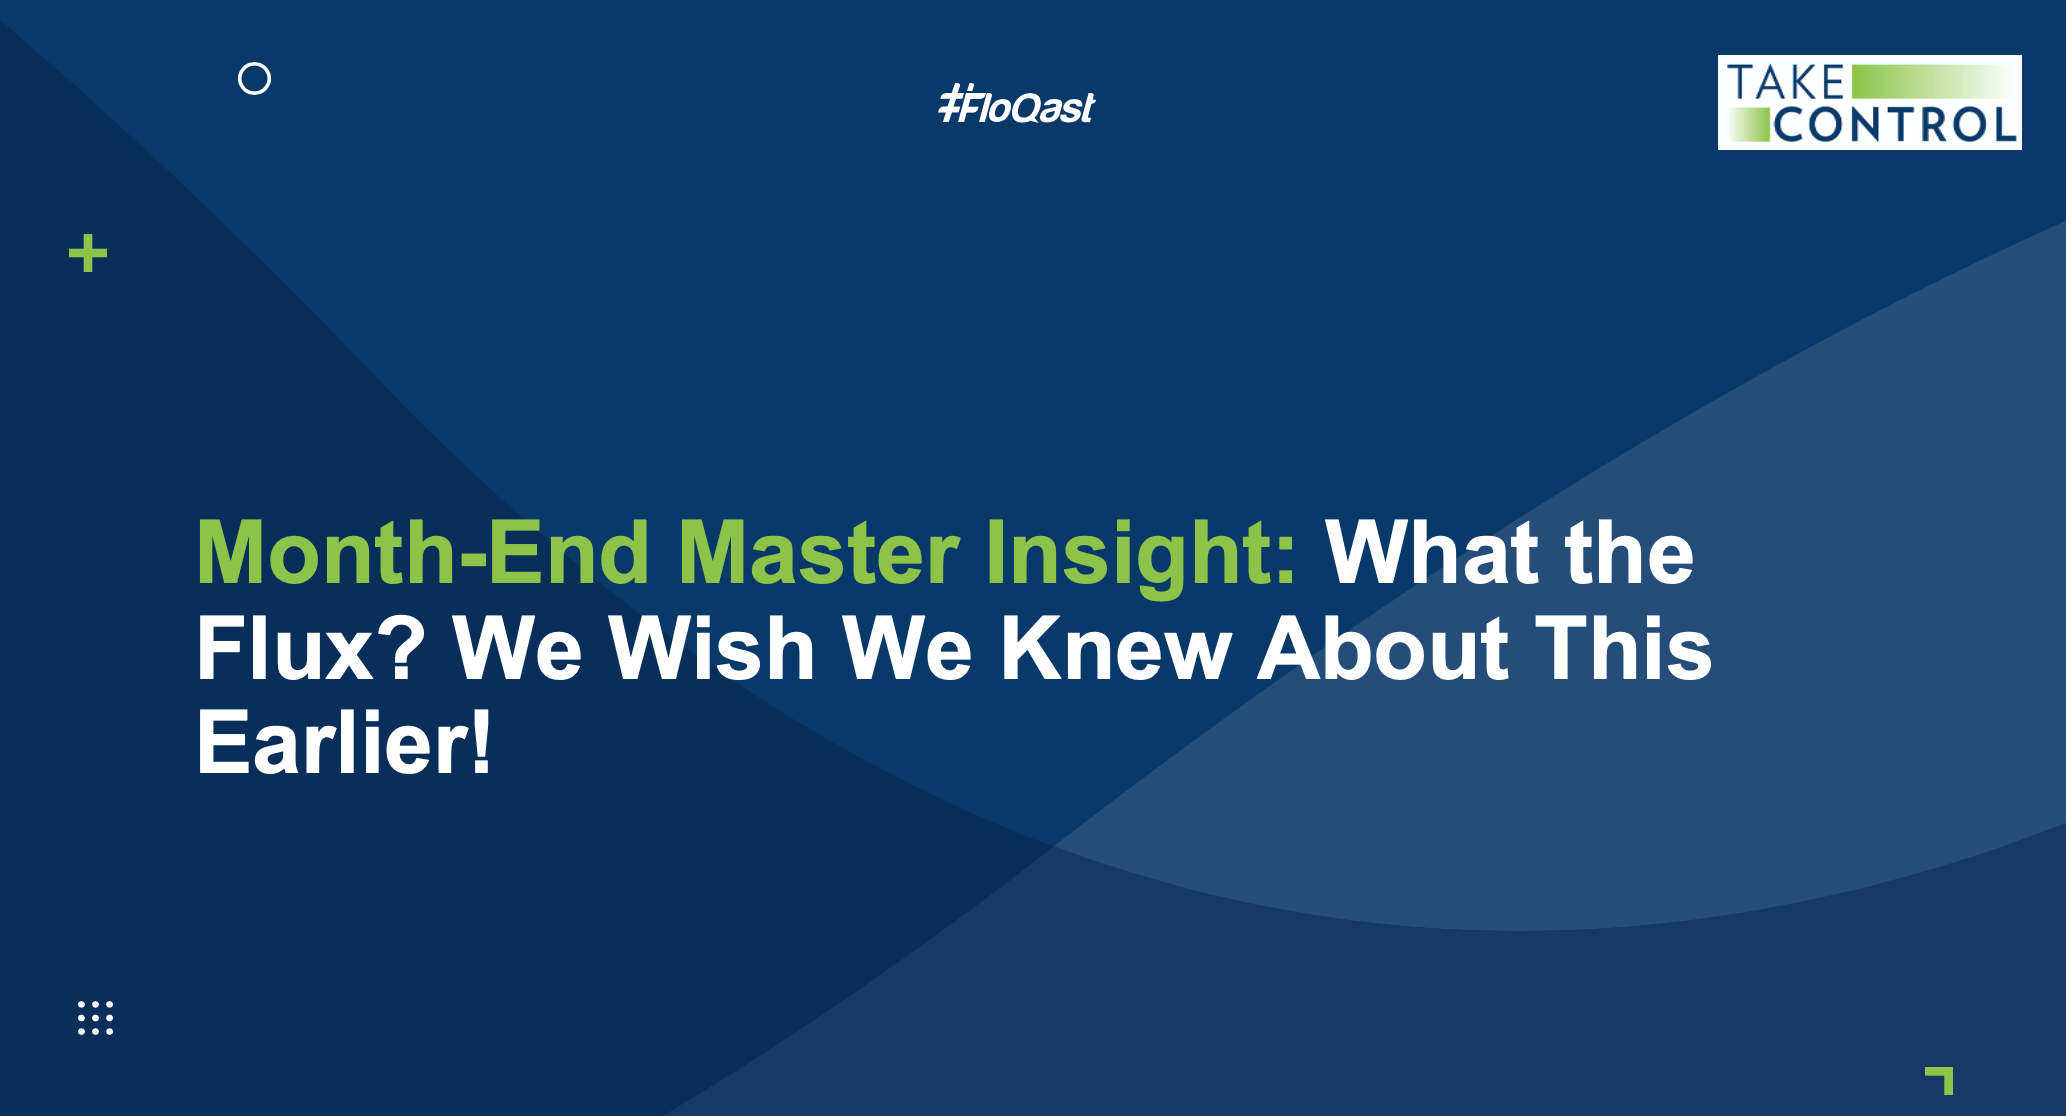 Month-End Master Insight, What the Flux